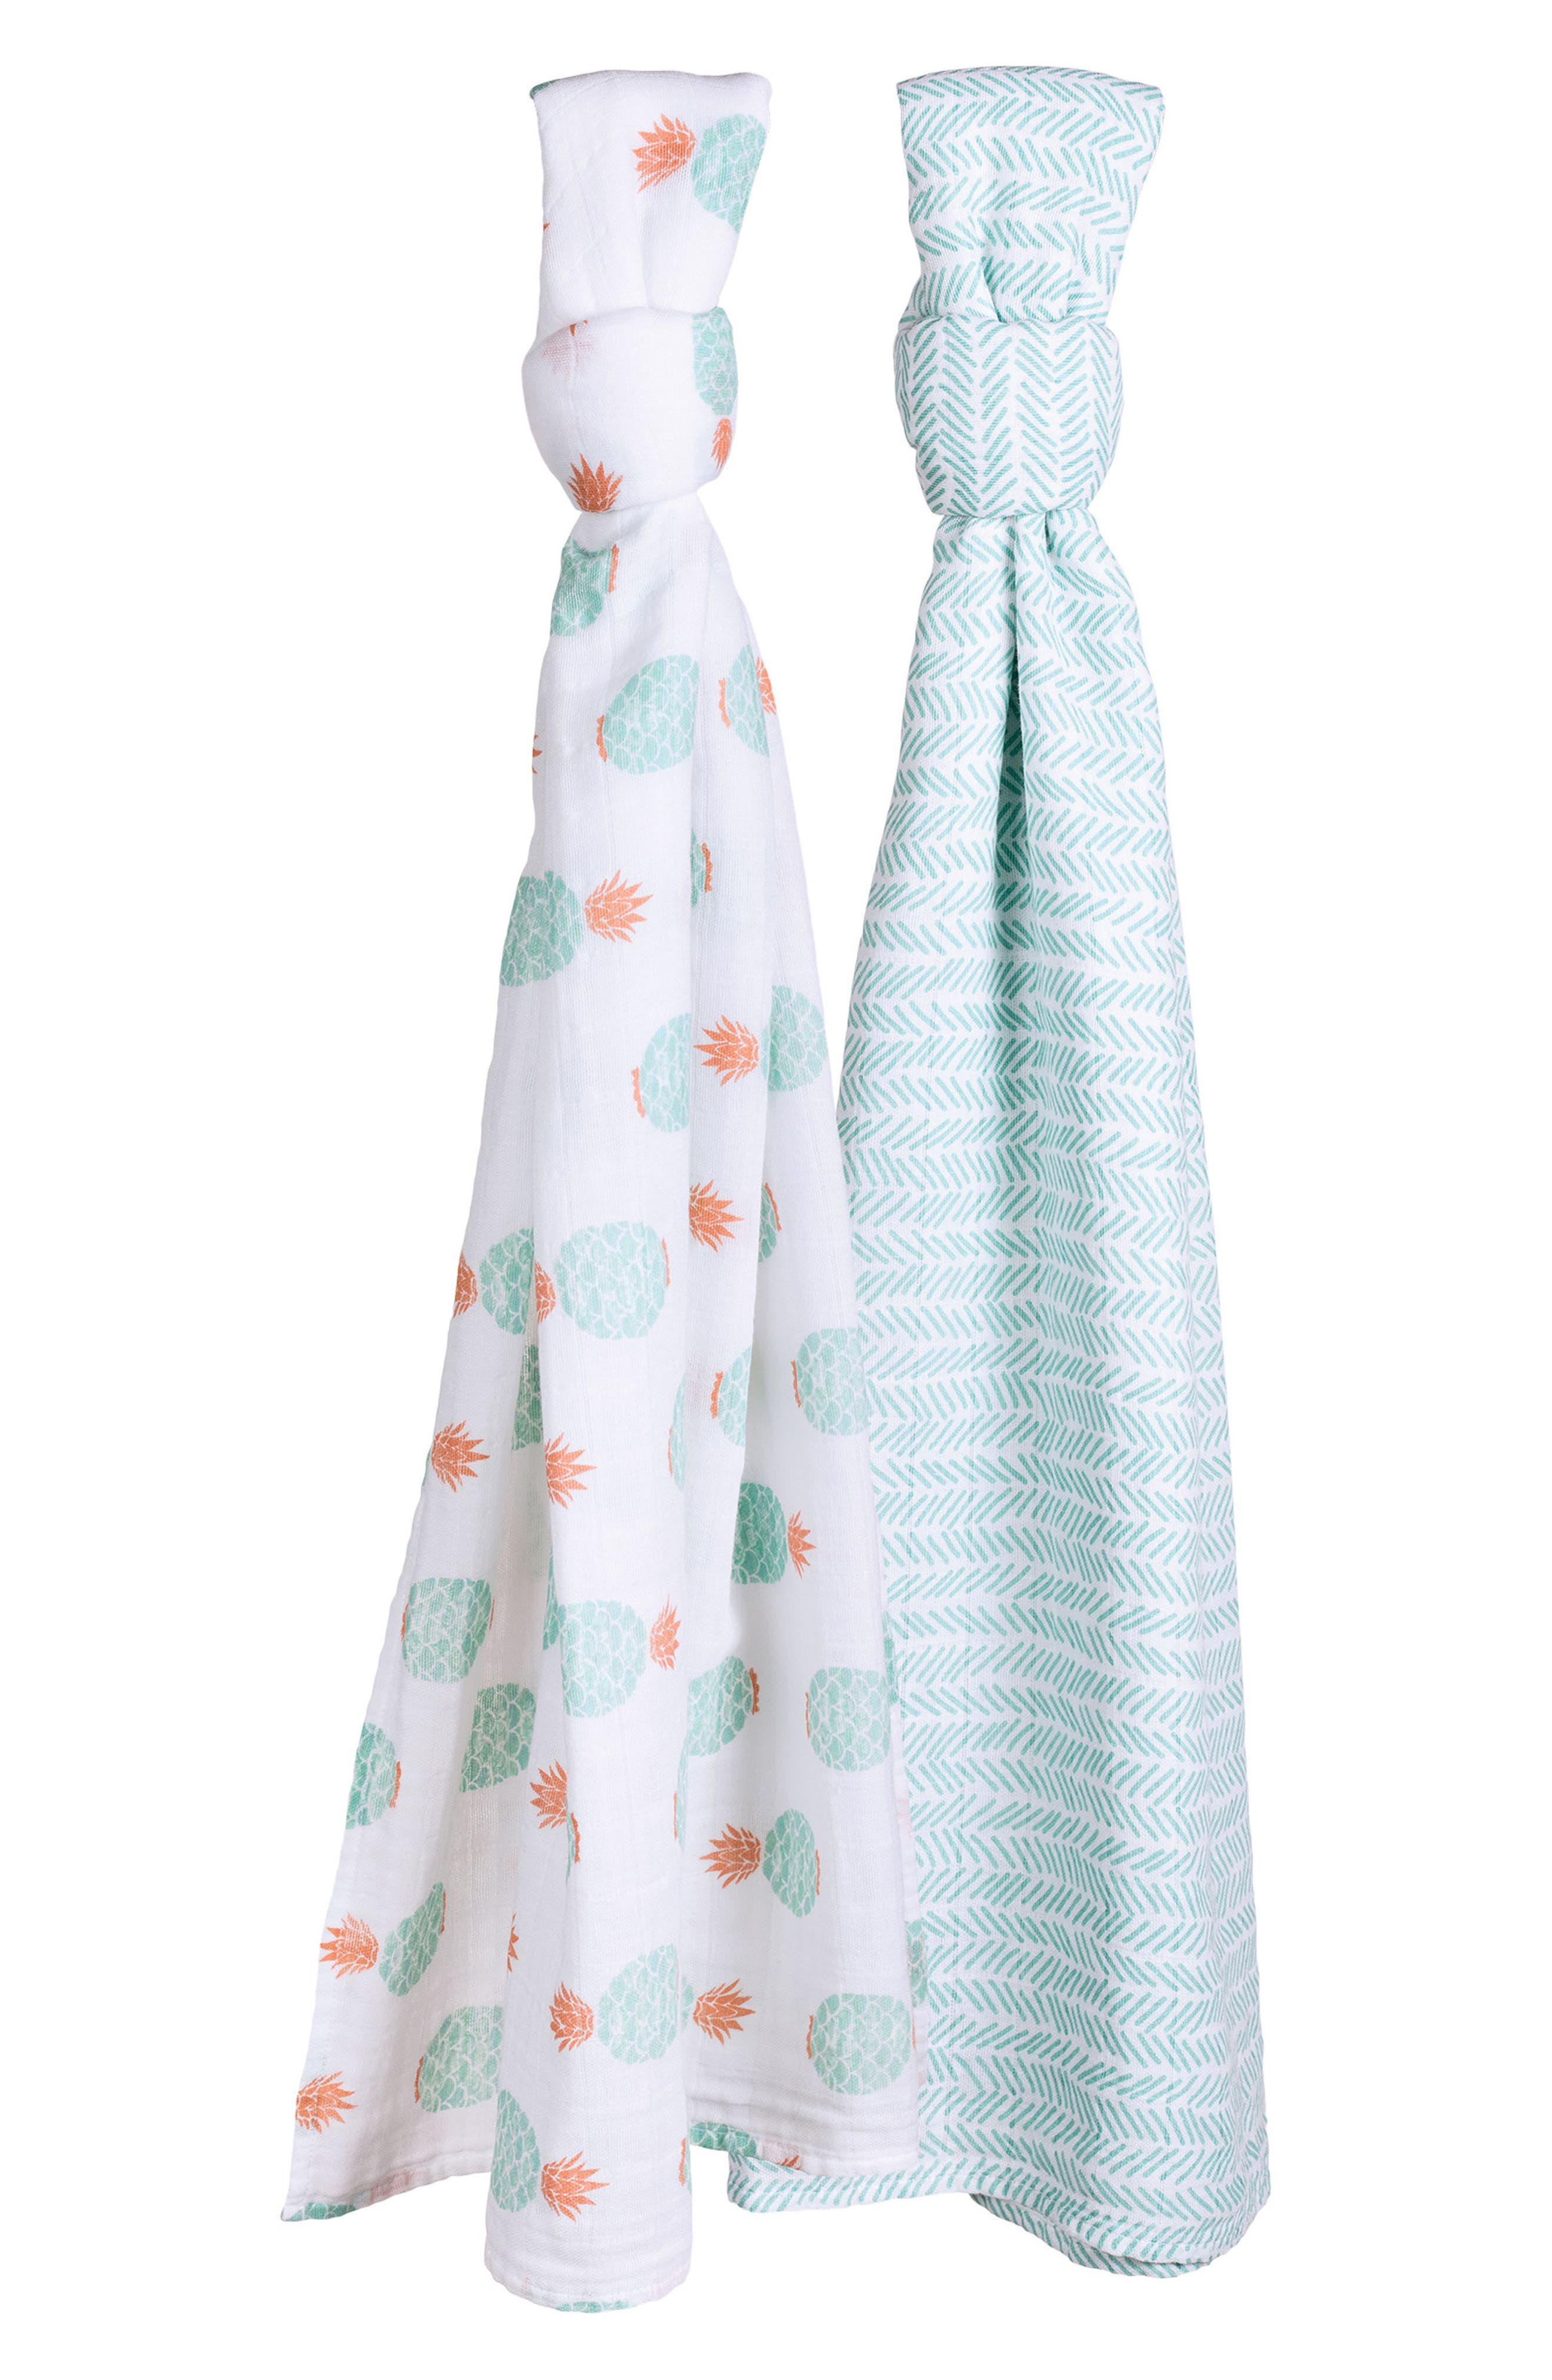 2-Pack Muslin Swaddle Blankets,                         Main,                         color, 340